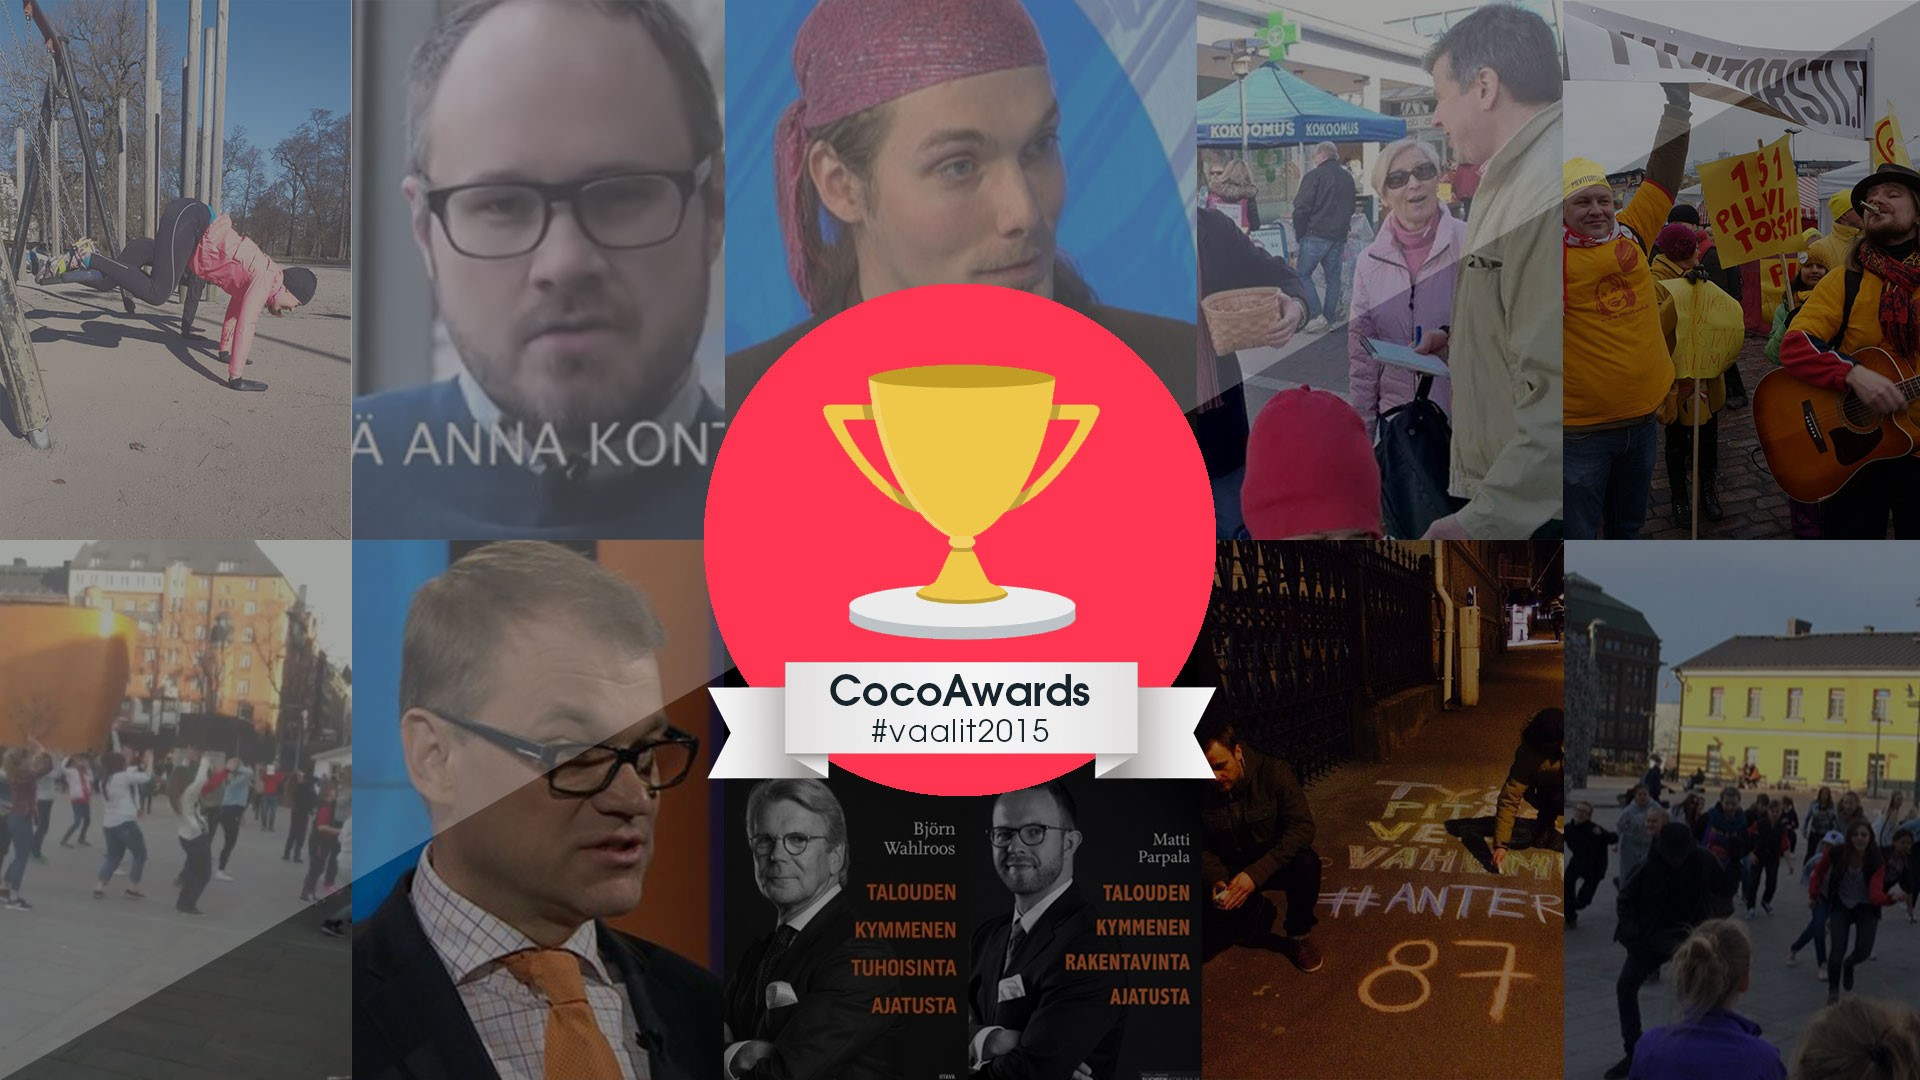 https://cocomms.com/2015/04/17/cocoawards-vaalit2015/